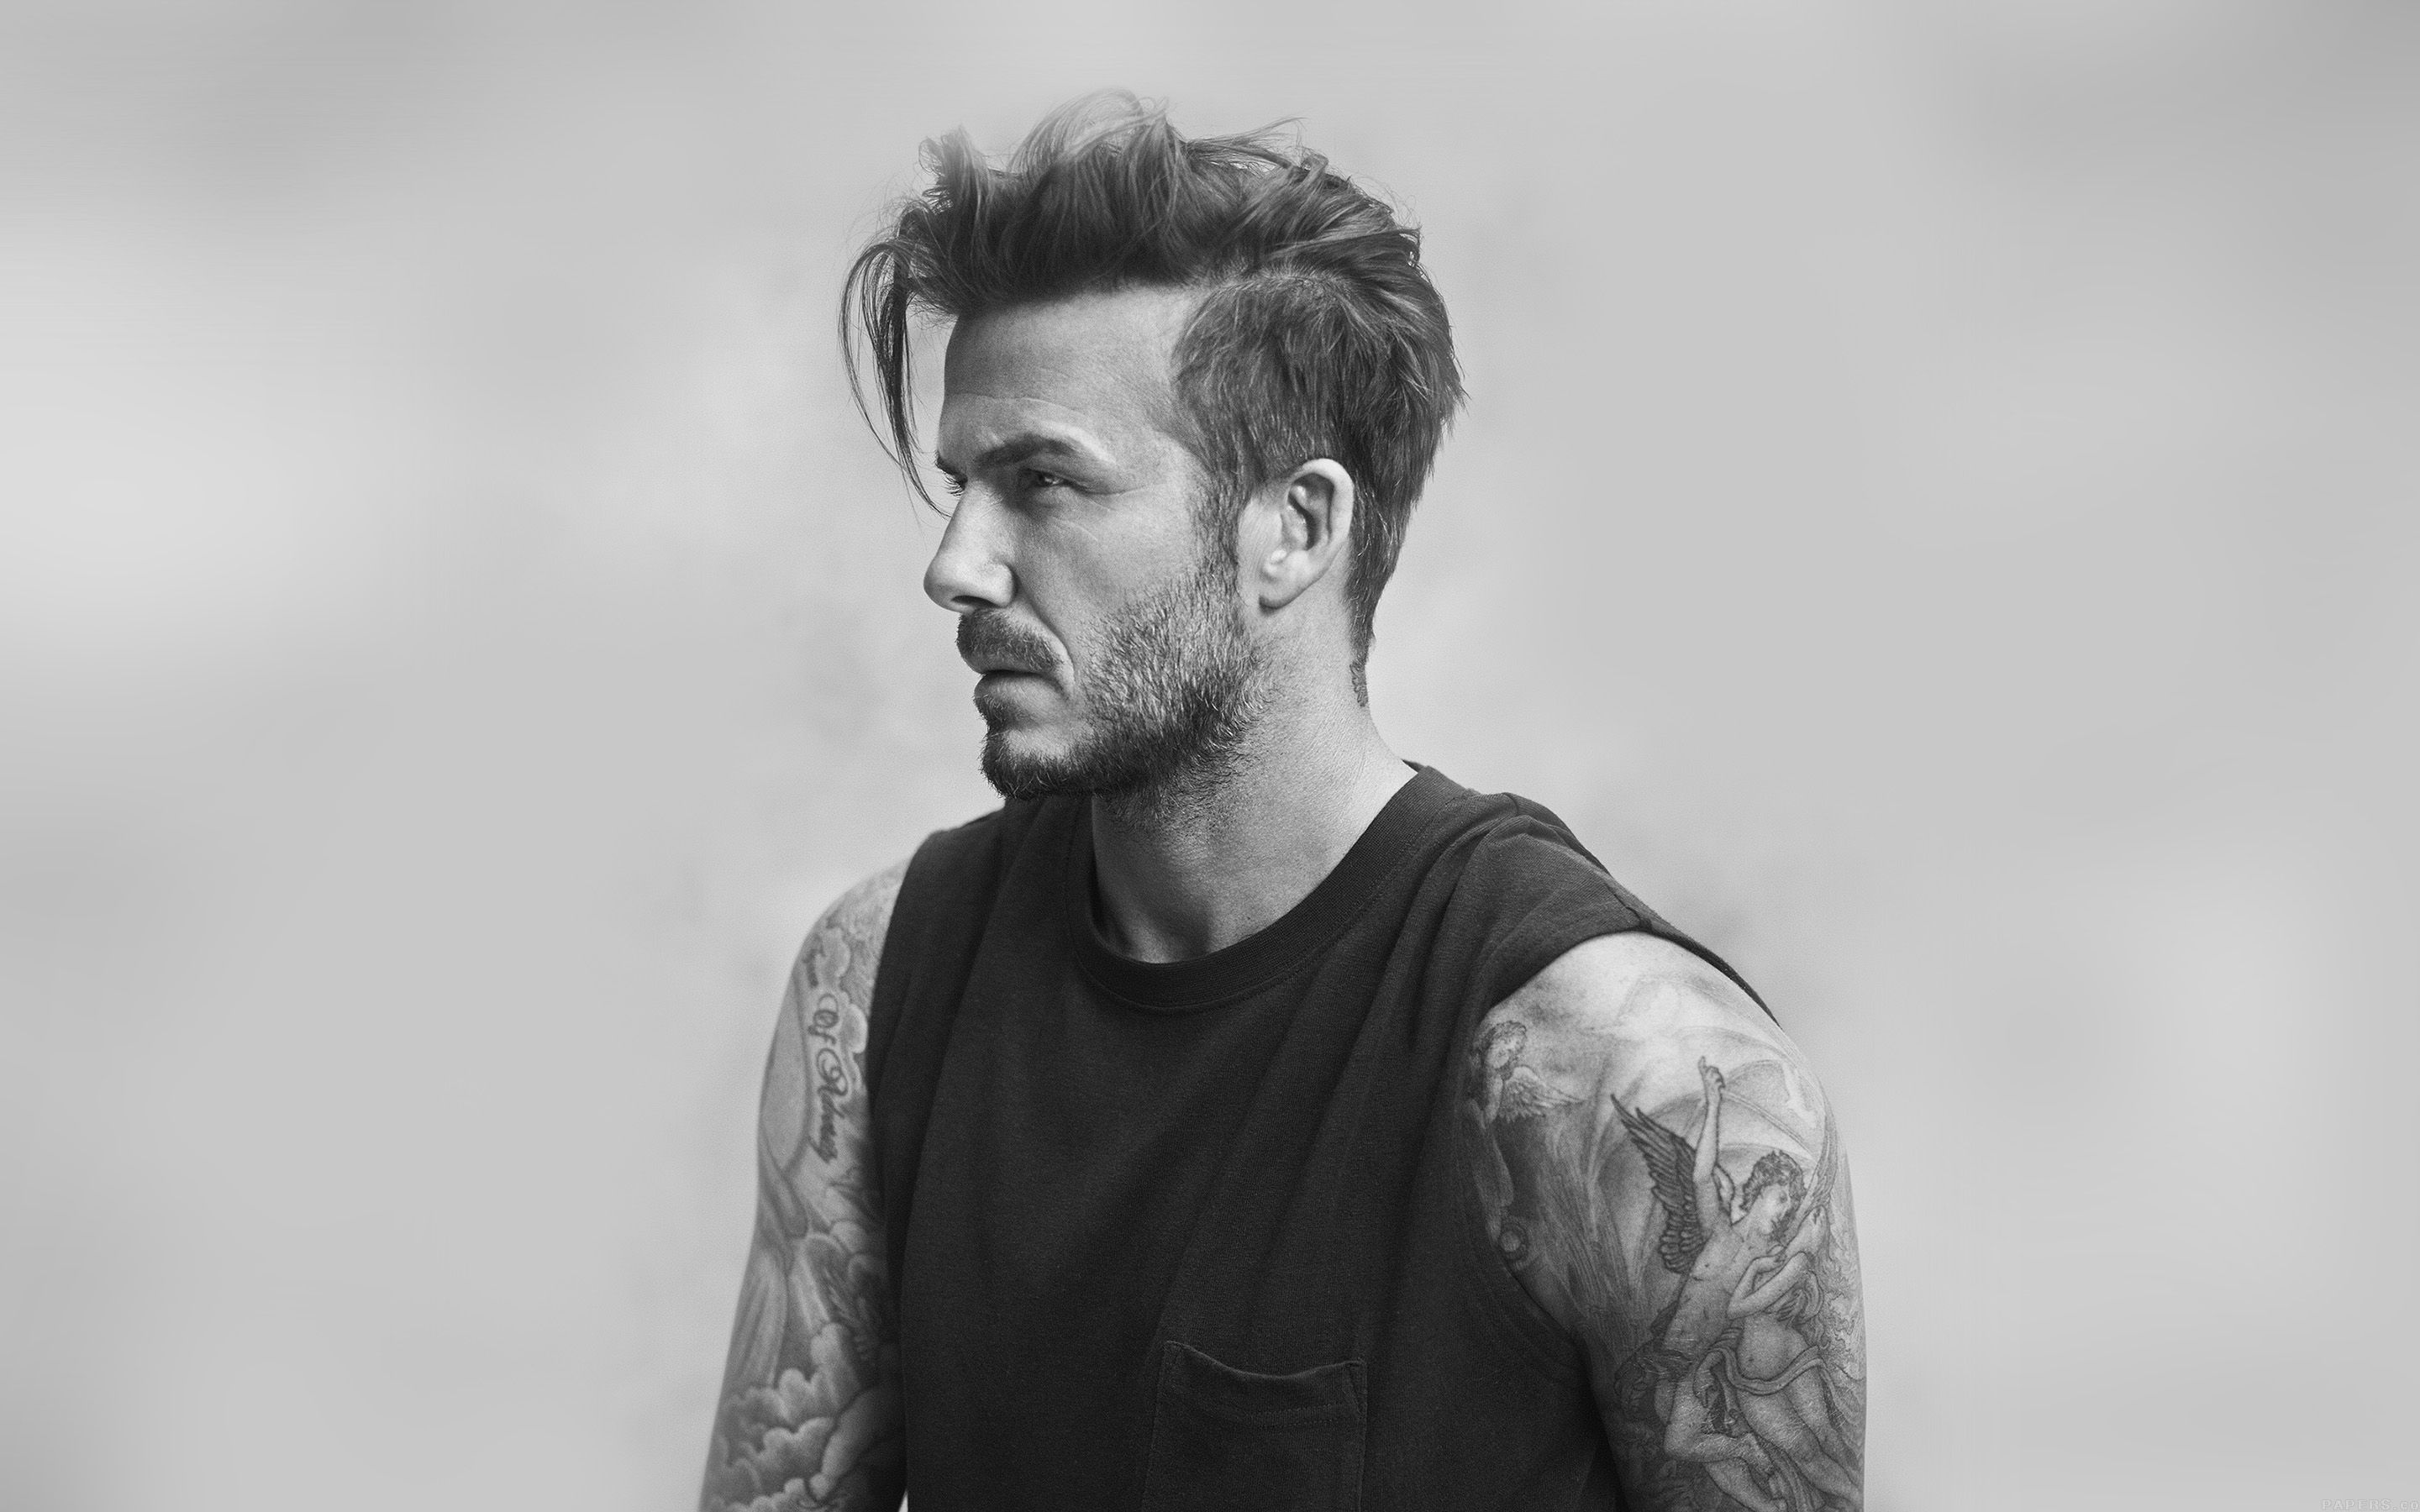 David Beckham Hd Wallpapers 7 Stuff To Buy Hair Styles David